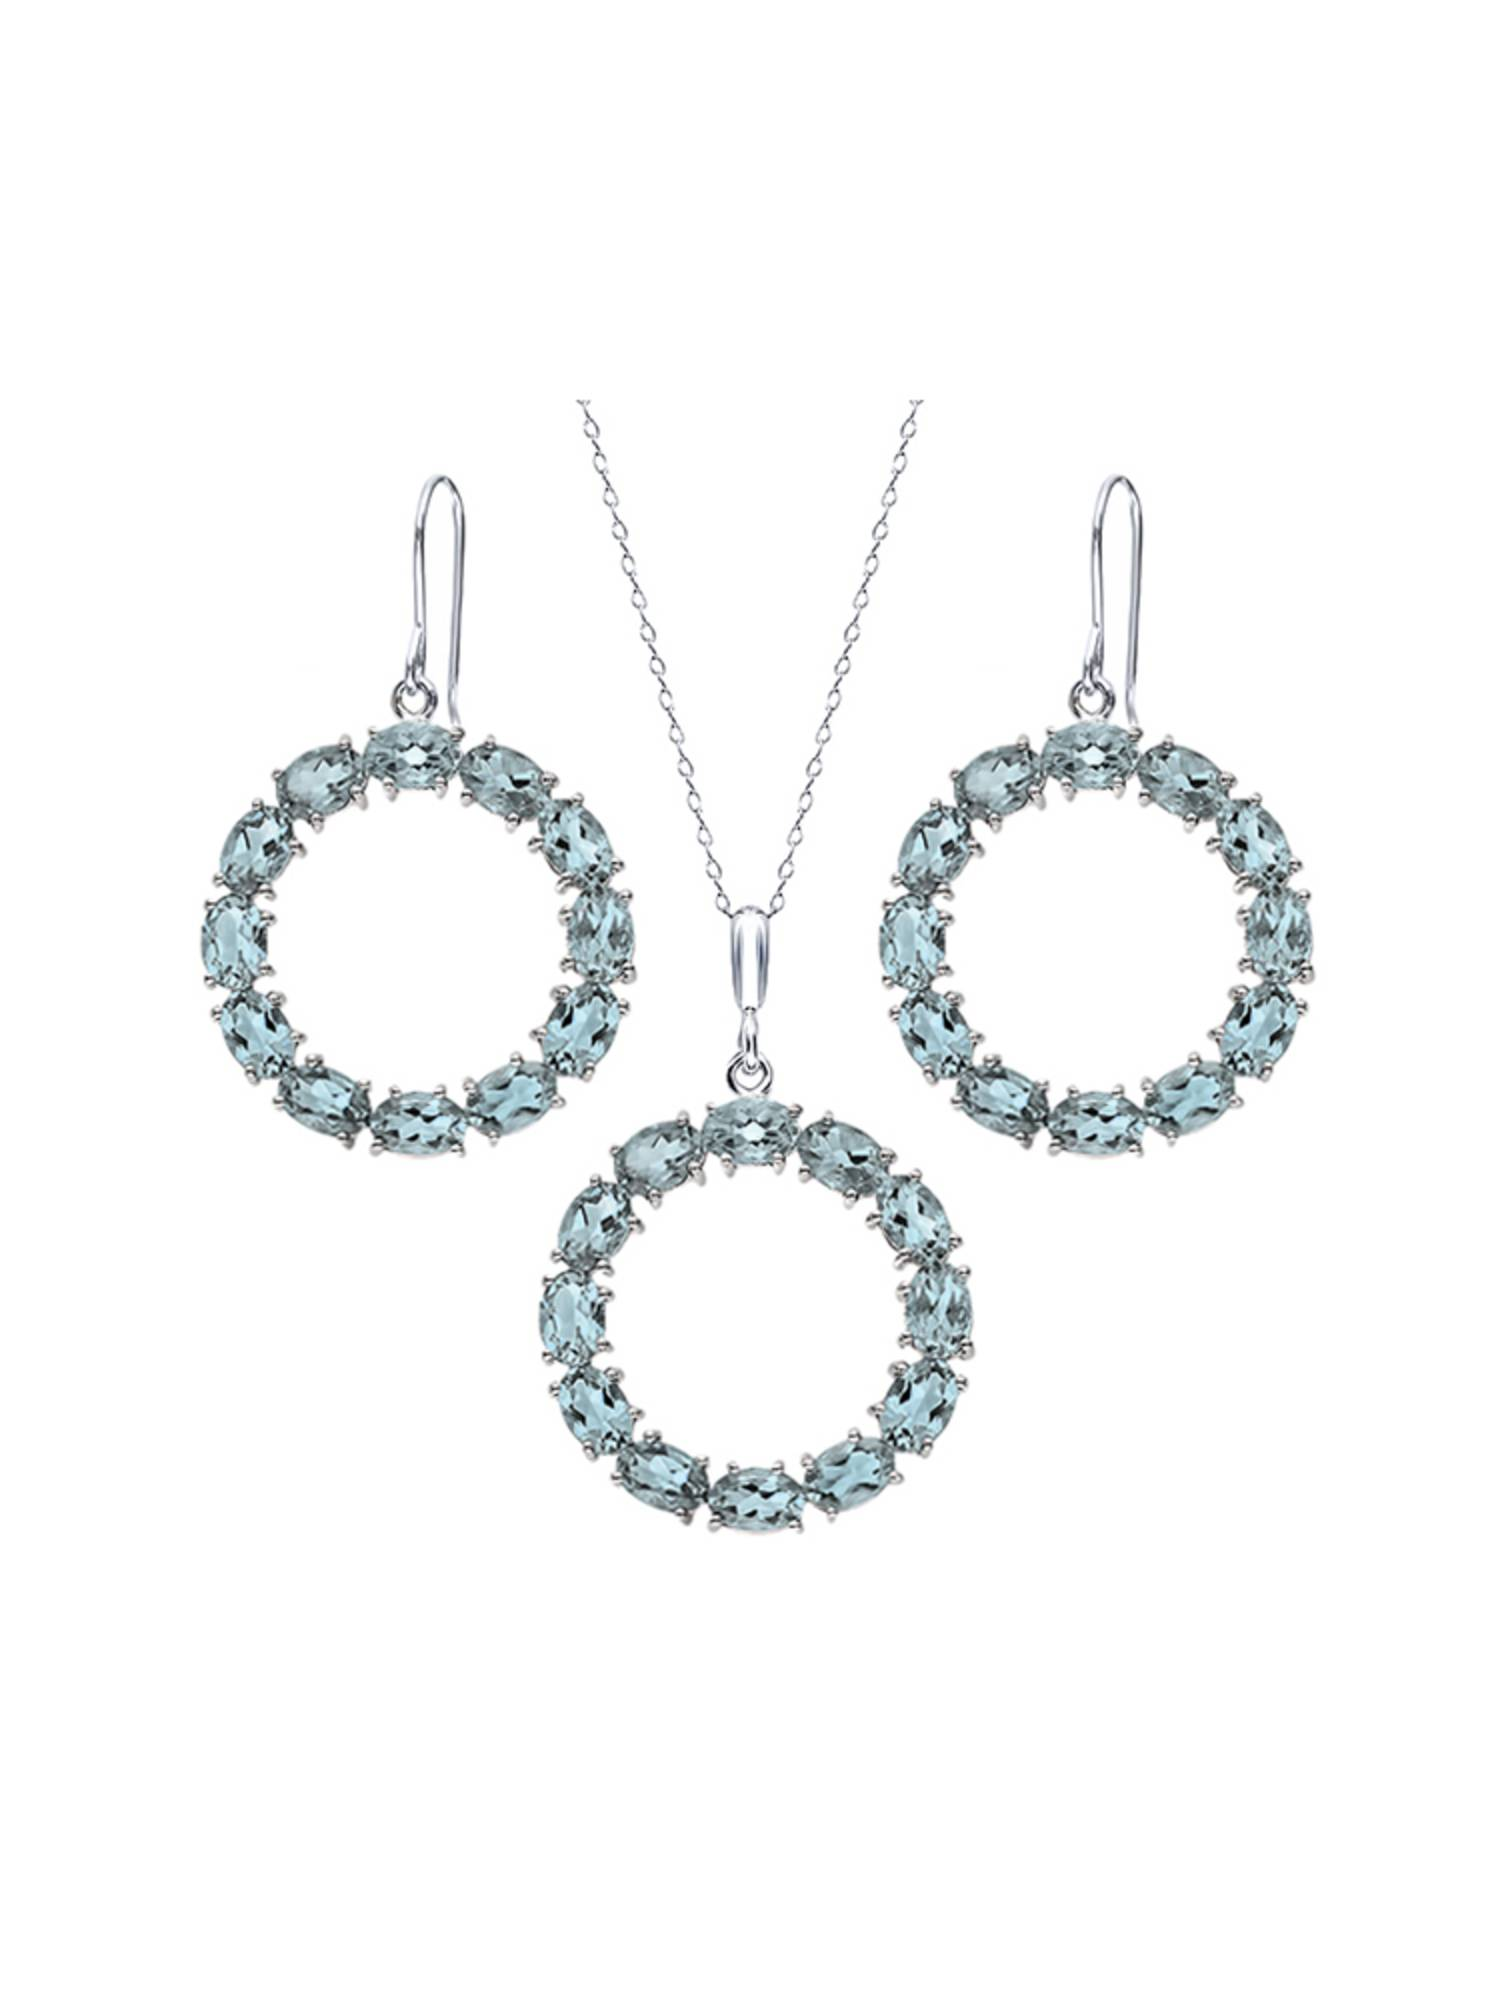 21 Ctw Oval Sky Blue Topaz Sterling Silver Circle Pendant Earrings Set by